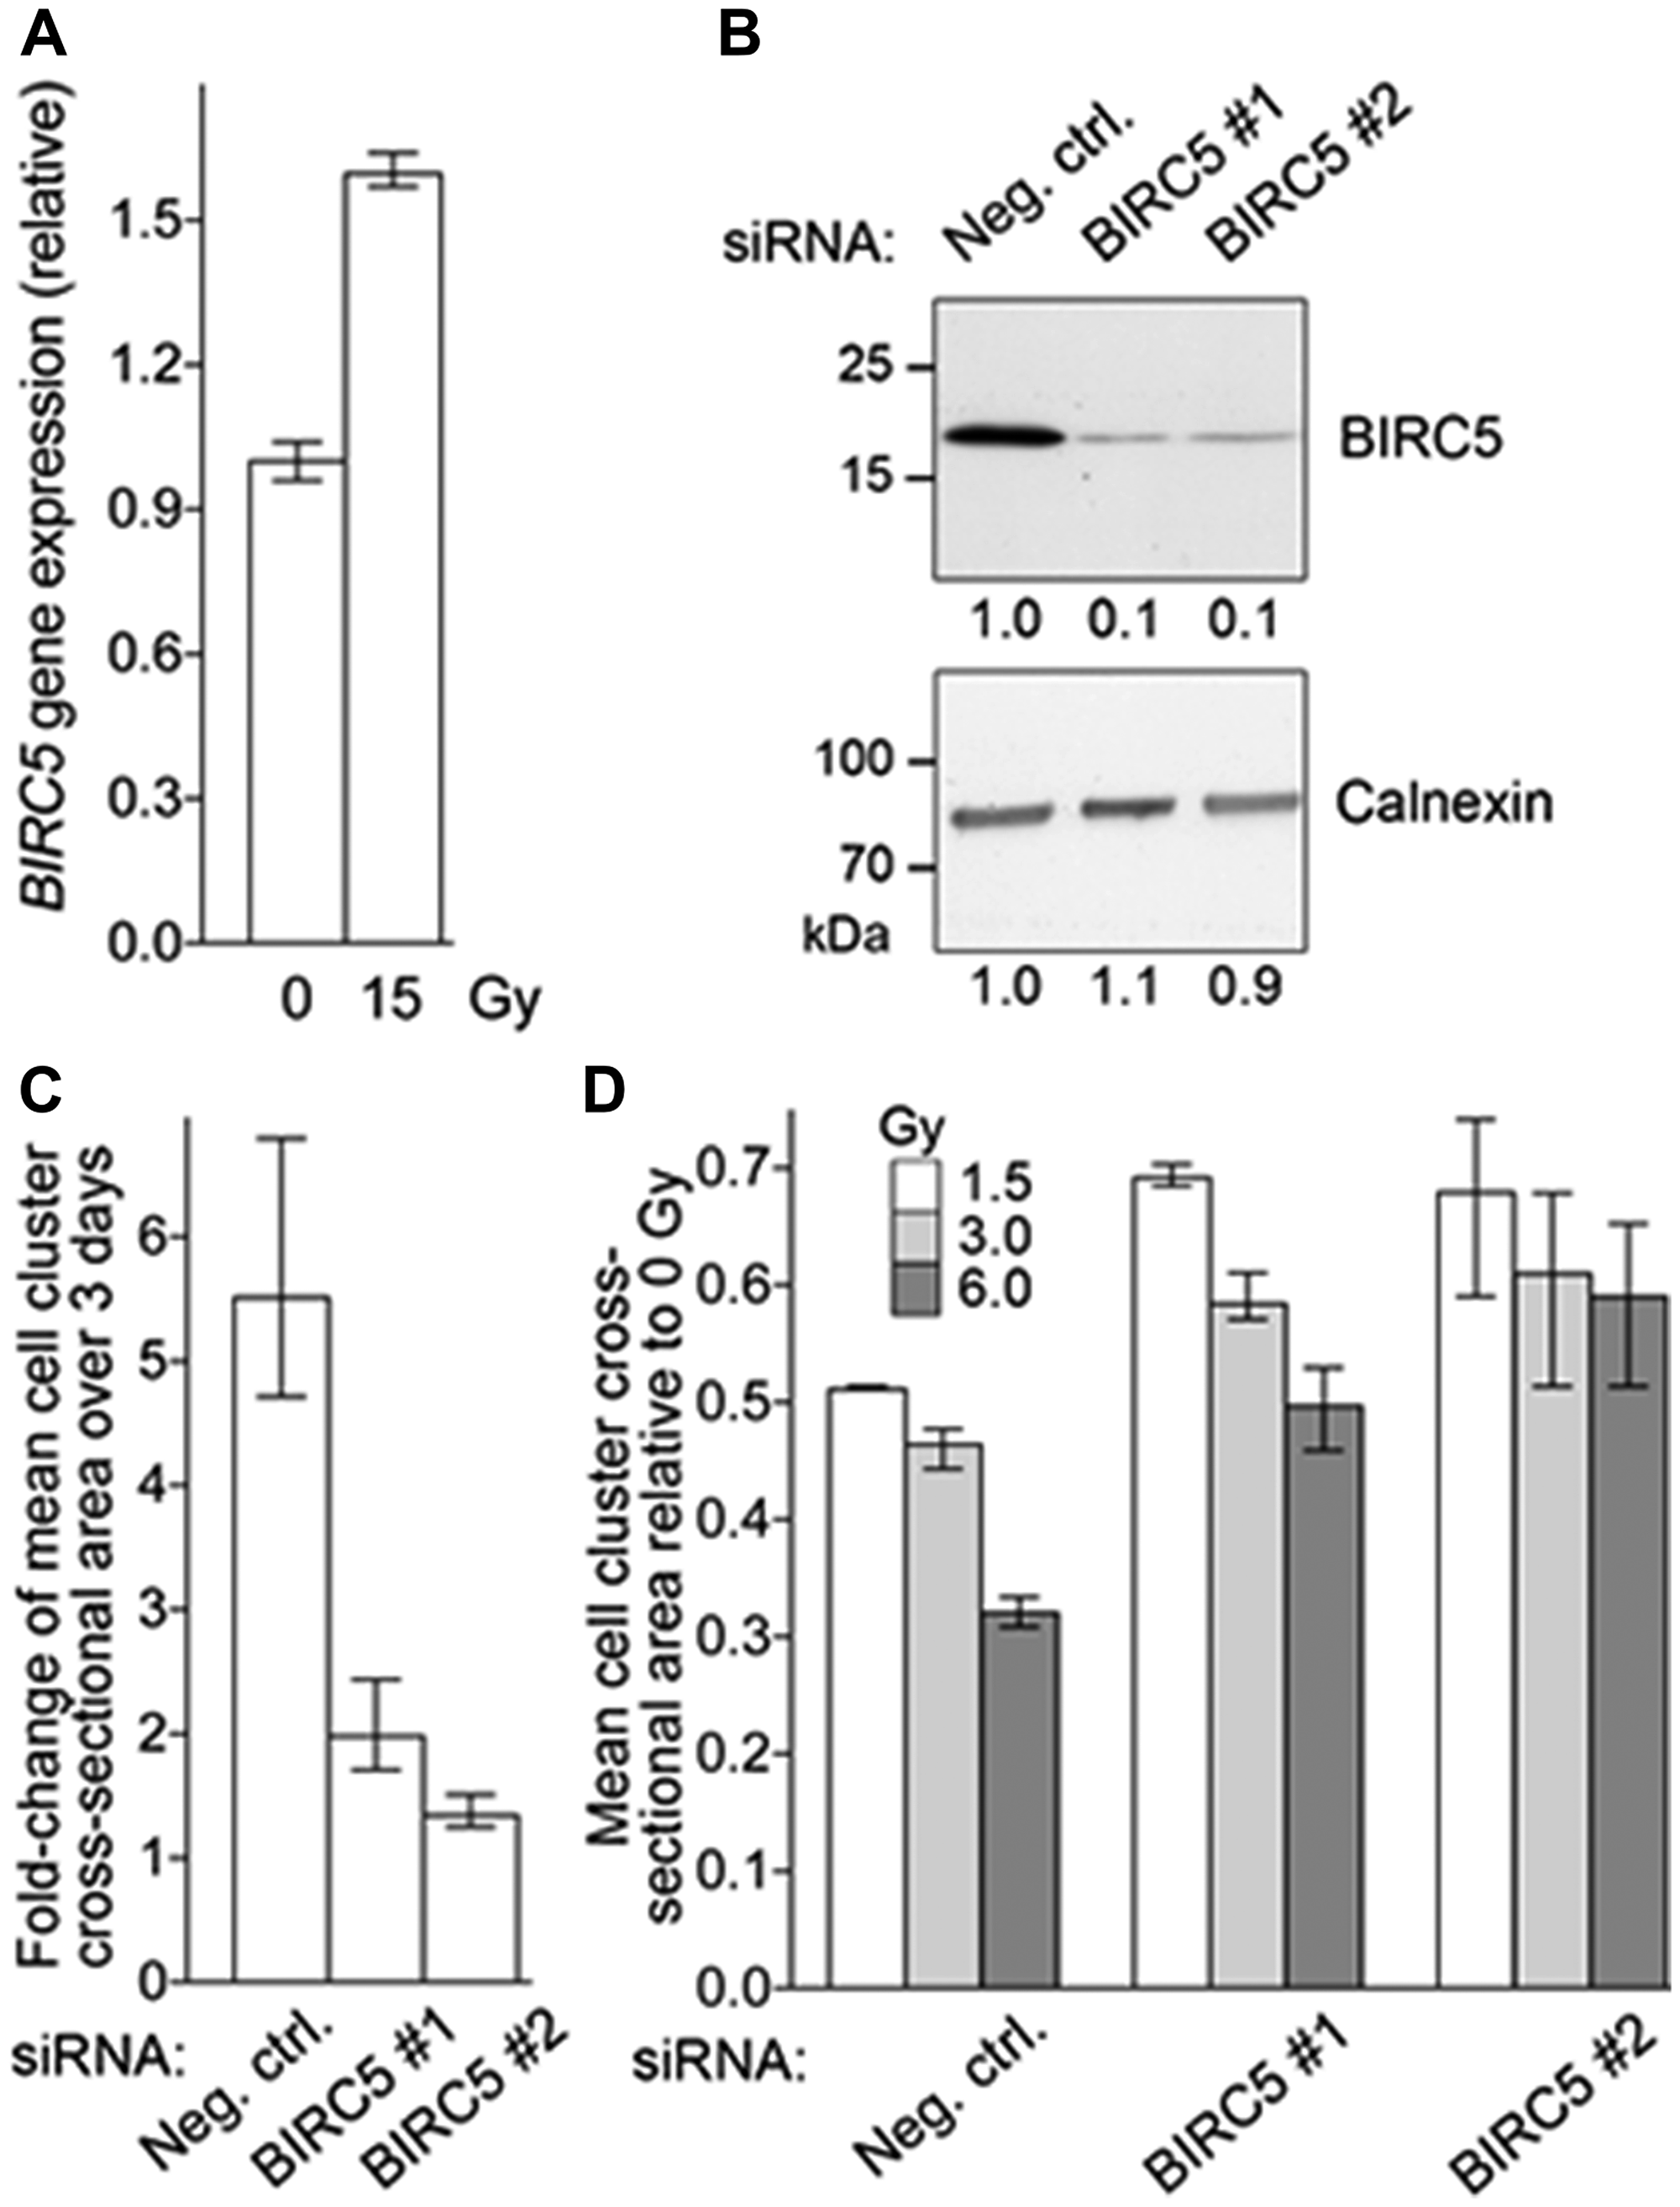 BIRC5 mRNA Expression in NET Cell Line.